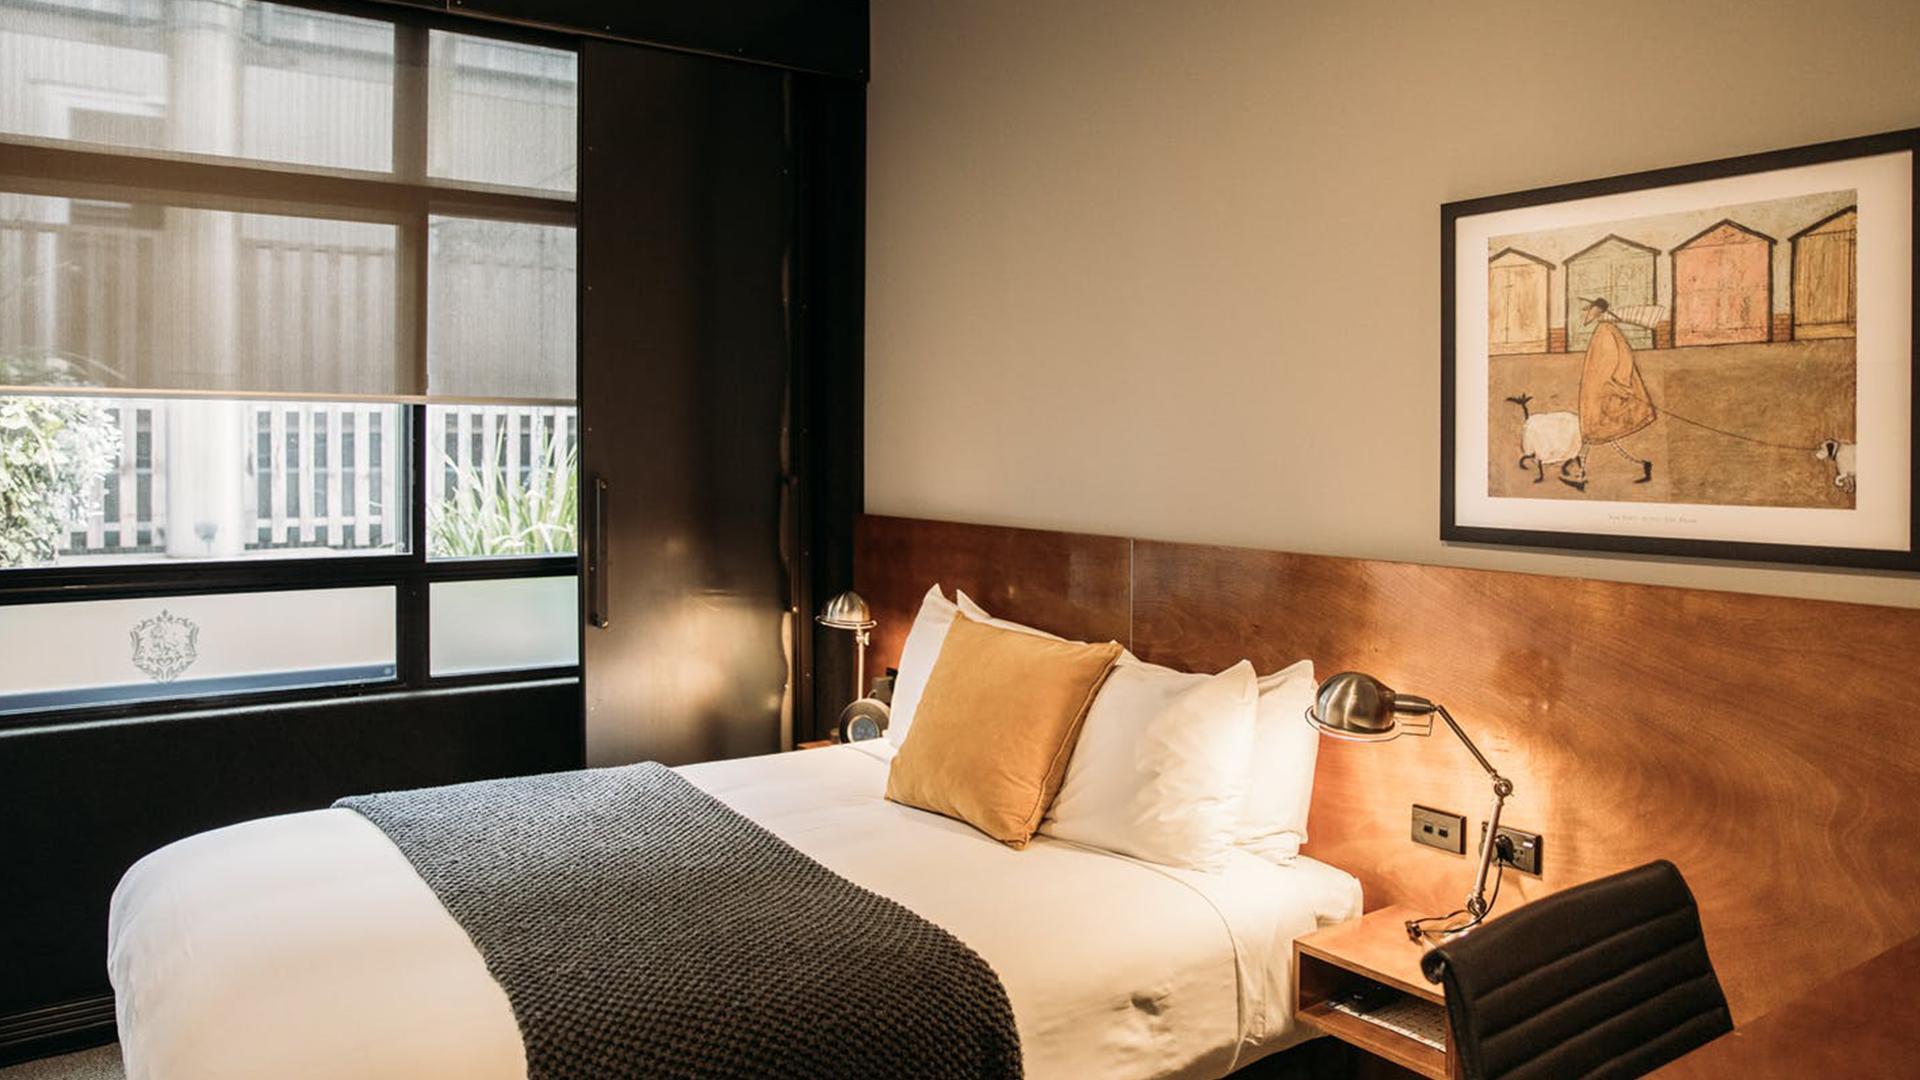 Left Wing Studio image 1 at King & Queen Hotel Suites by null, null, New Zealand